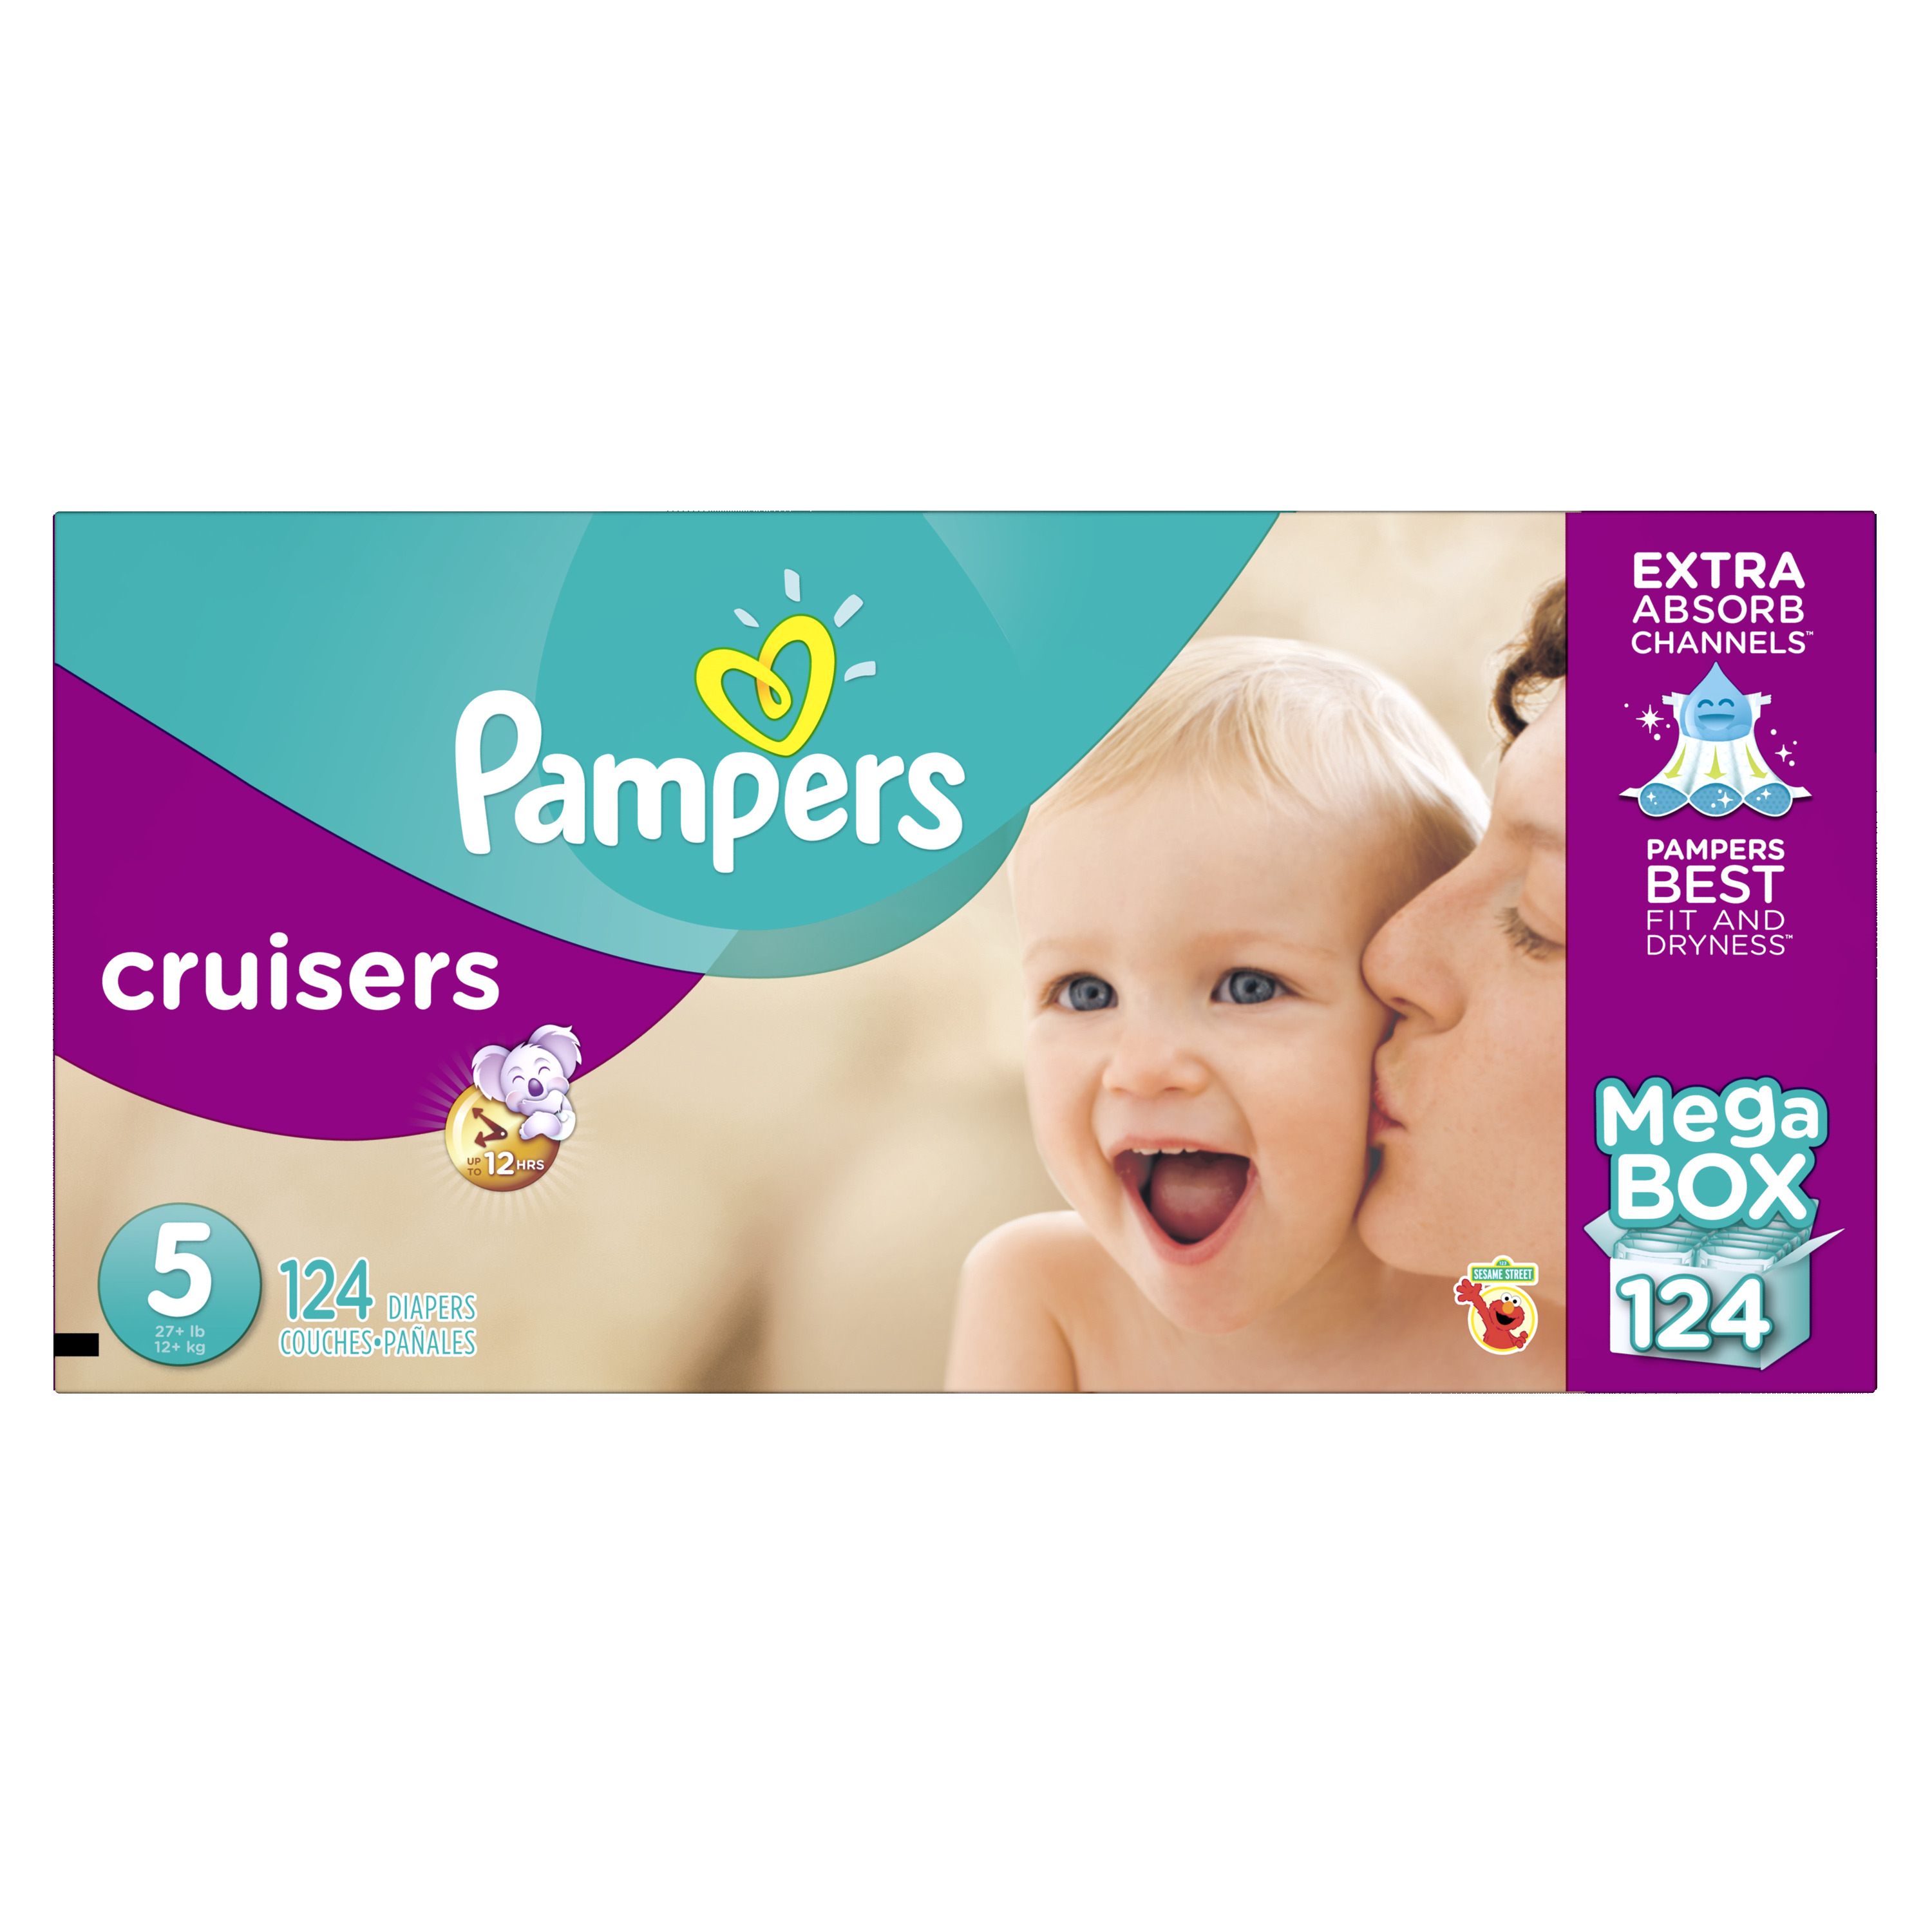 Product of 'Pampers' Cruisers Size 5 Diapers; 124 ct. - Bulk Qty, Free Shipping - Comfortable, Soft, No Leaking & Good nite Diapers